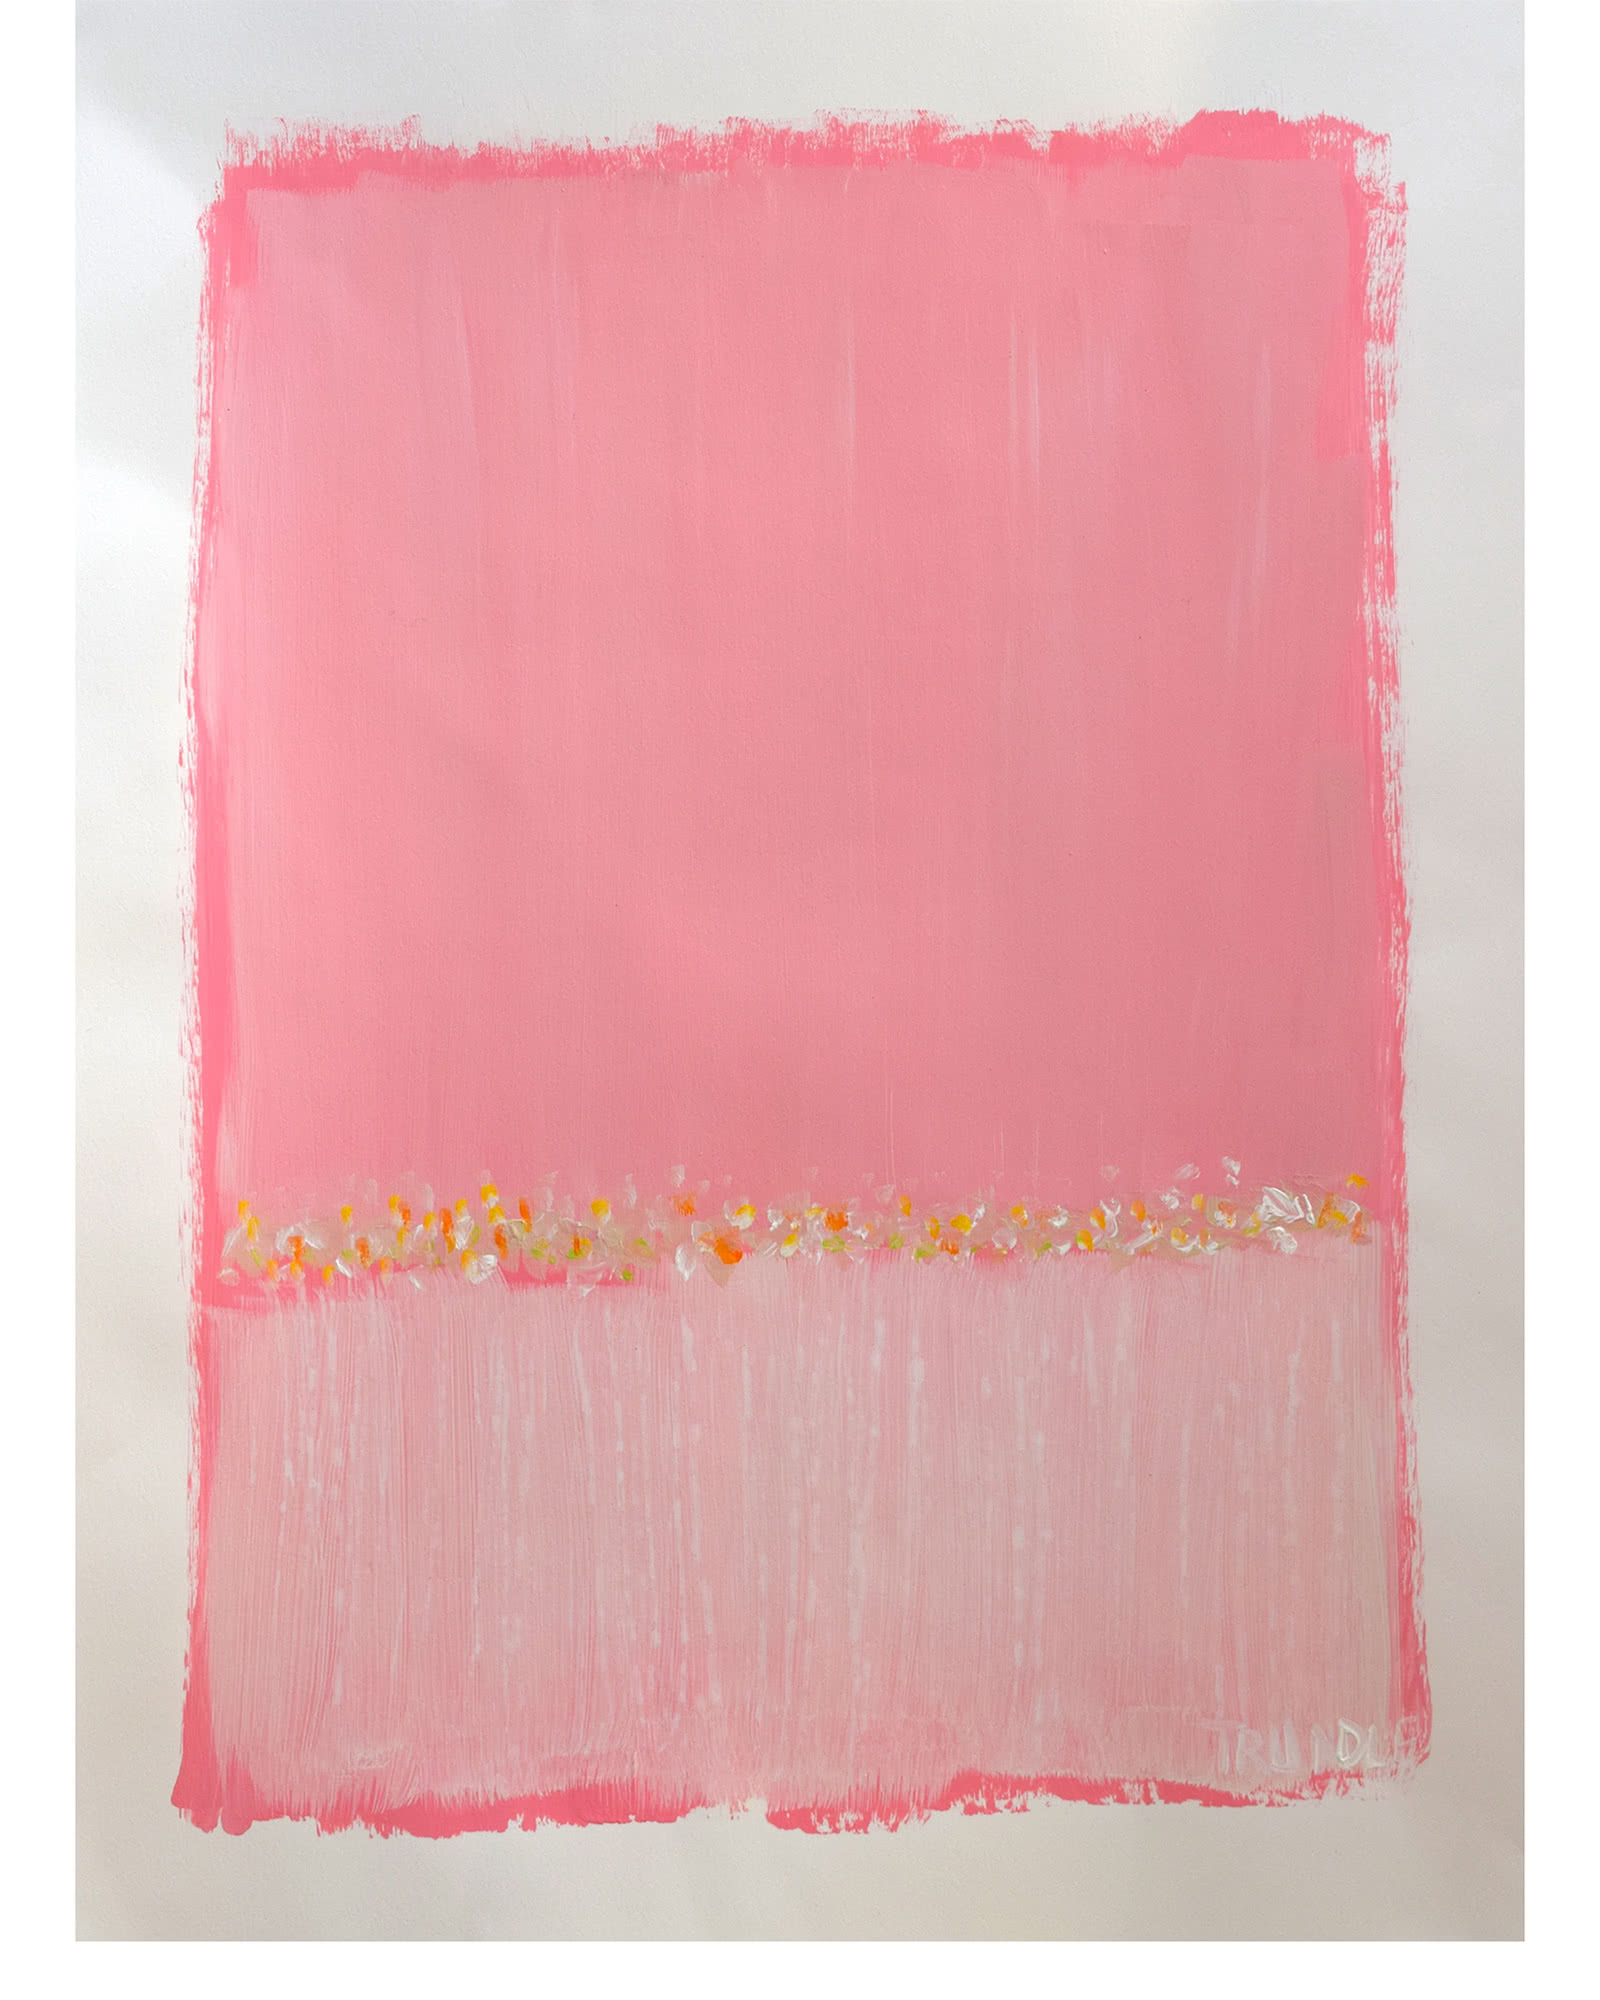 """Landscape Study in Pink"" by Sarah Trundle"